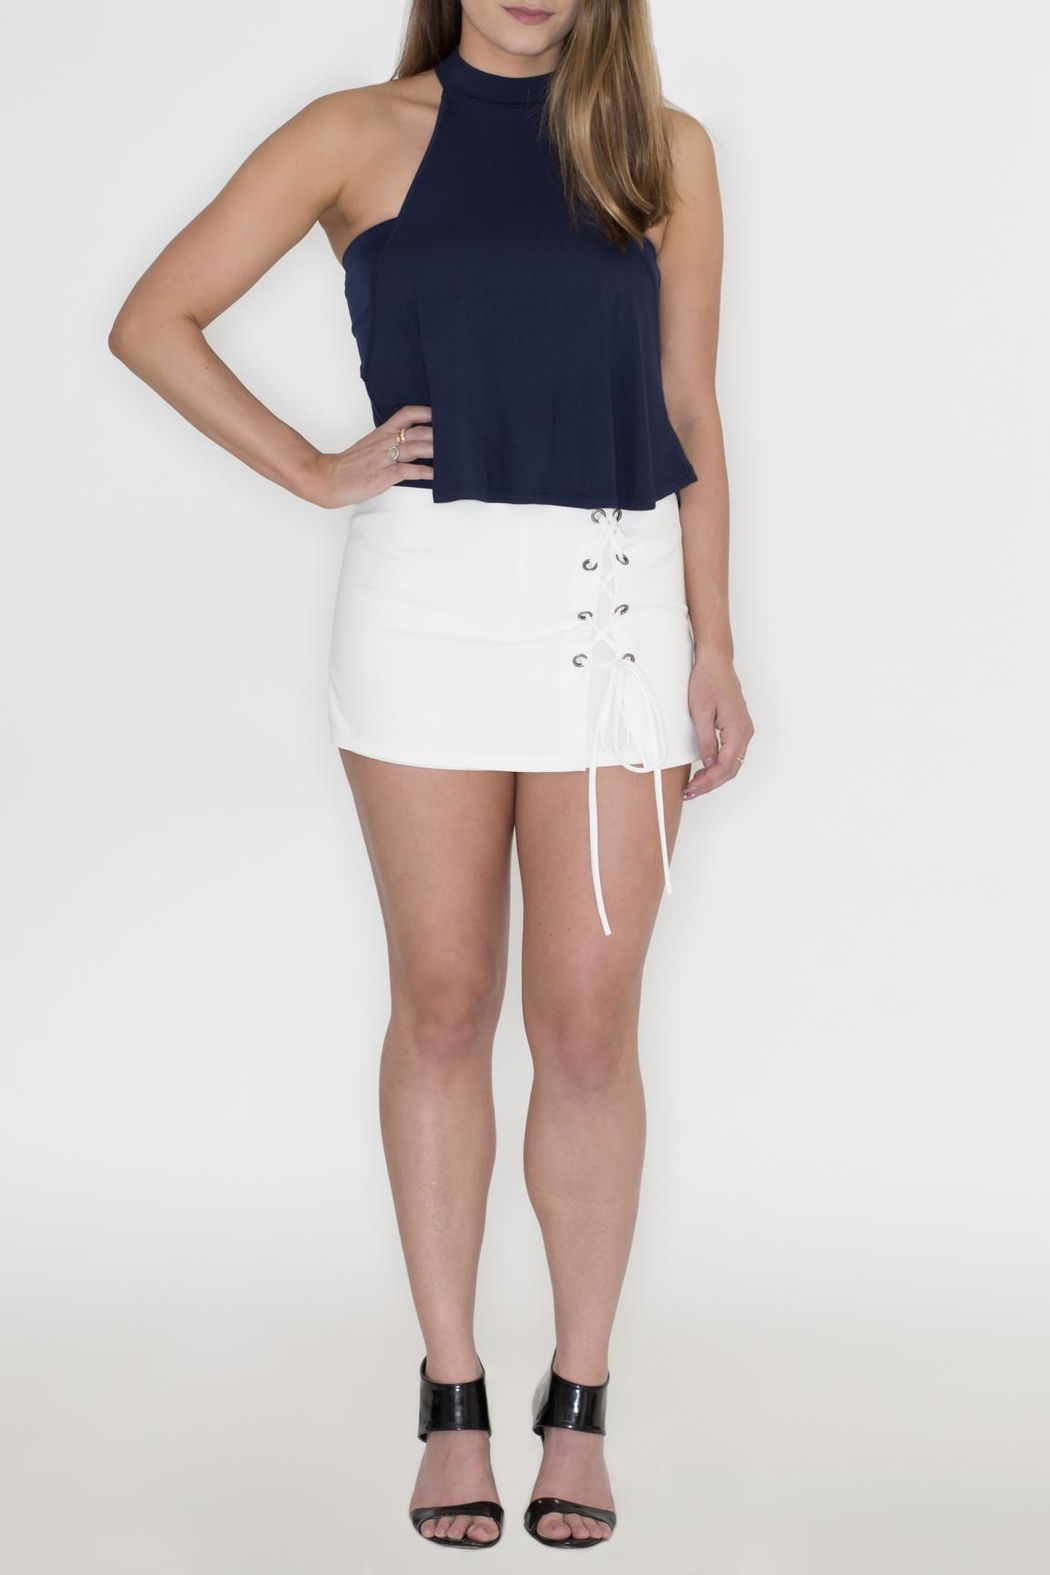 cc830e1410db0 blue blush Lace Up Skort from Philadelphia by May 23 — Shoptiques